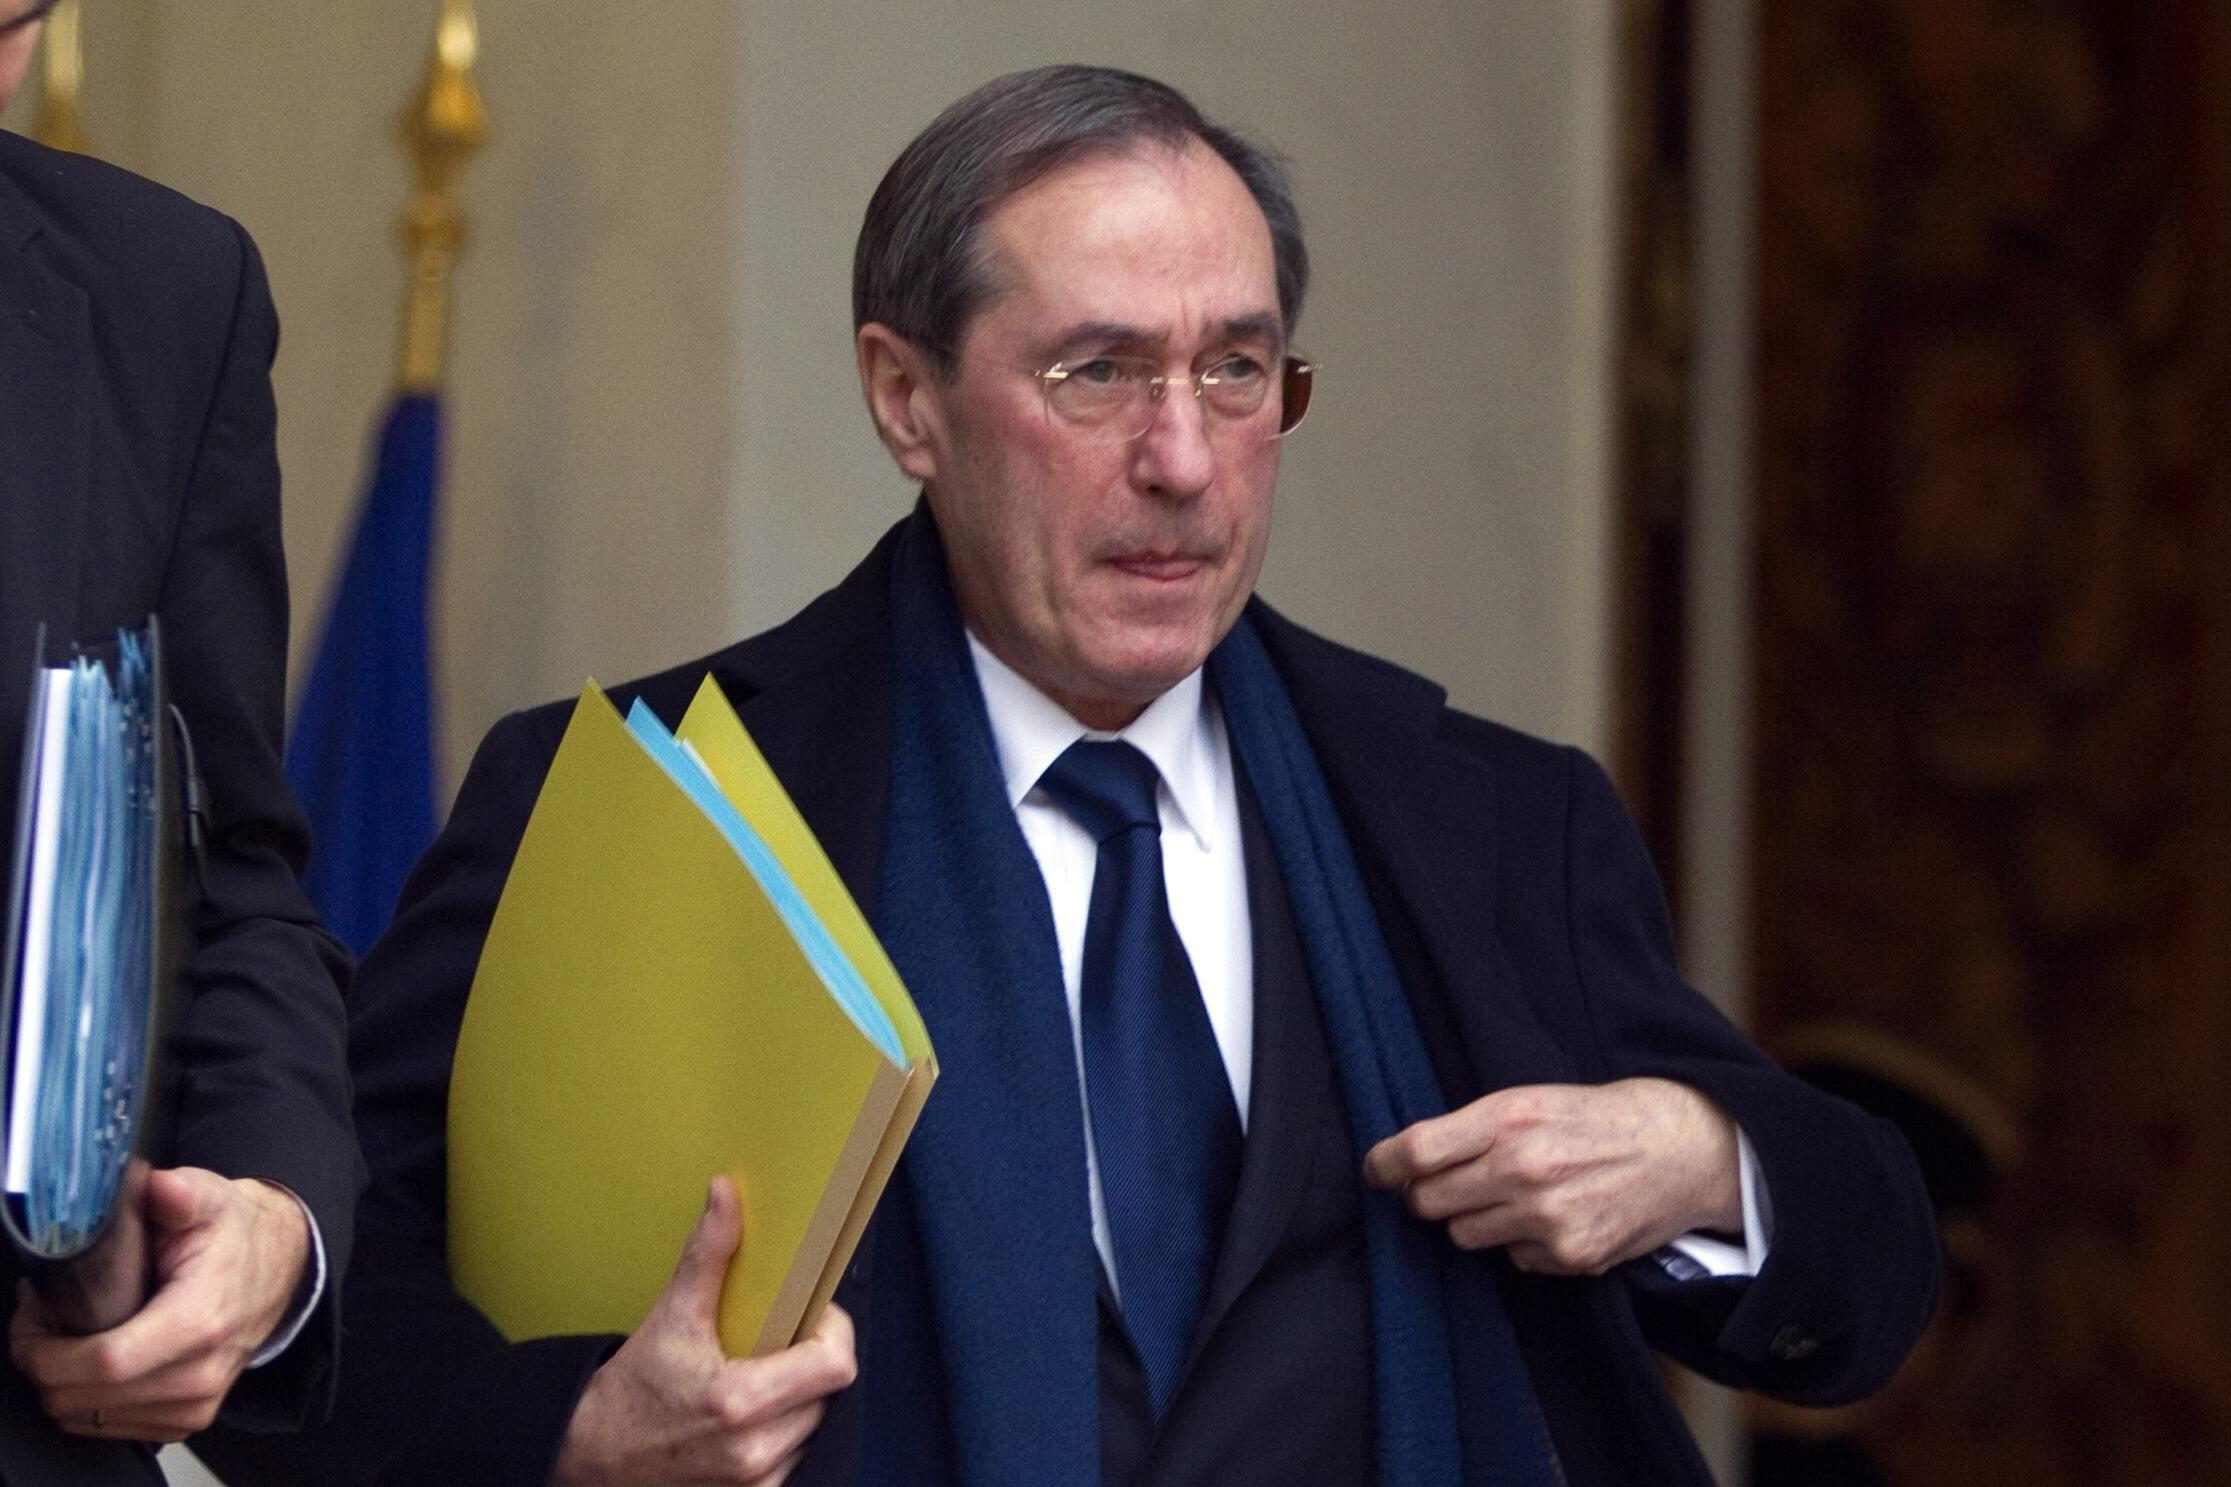 Claude Guéant, former Elysée secretary-general is among those called for questioning.